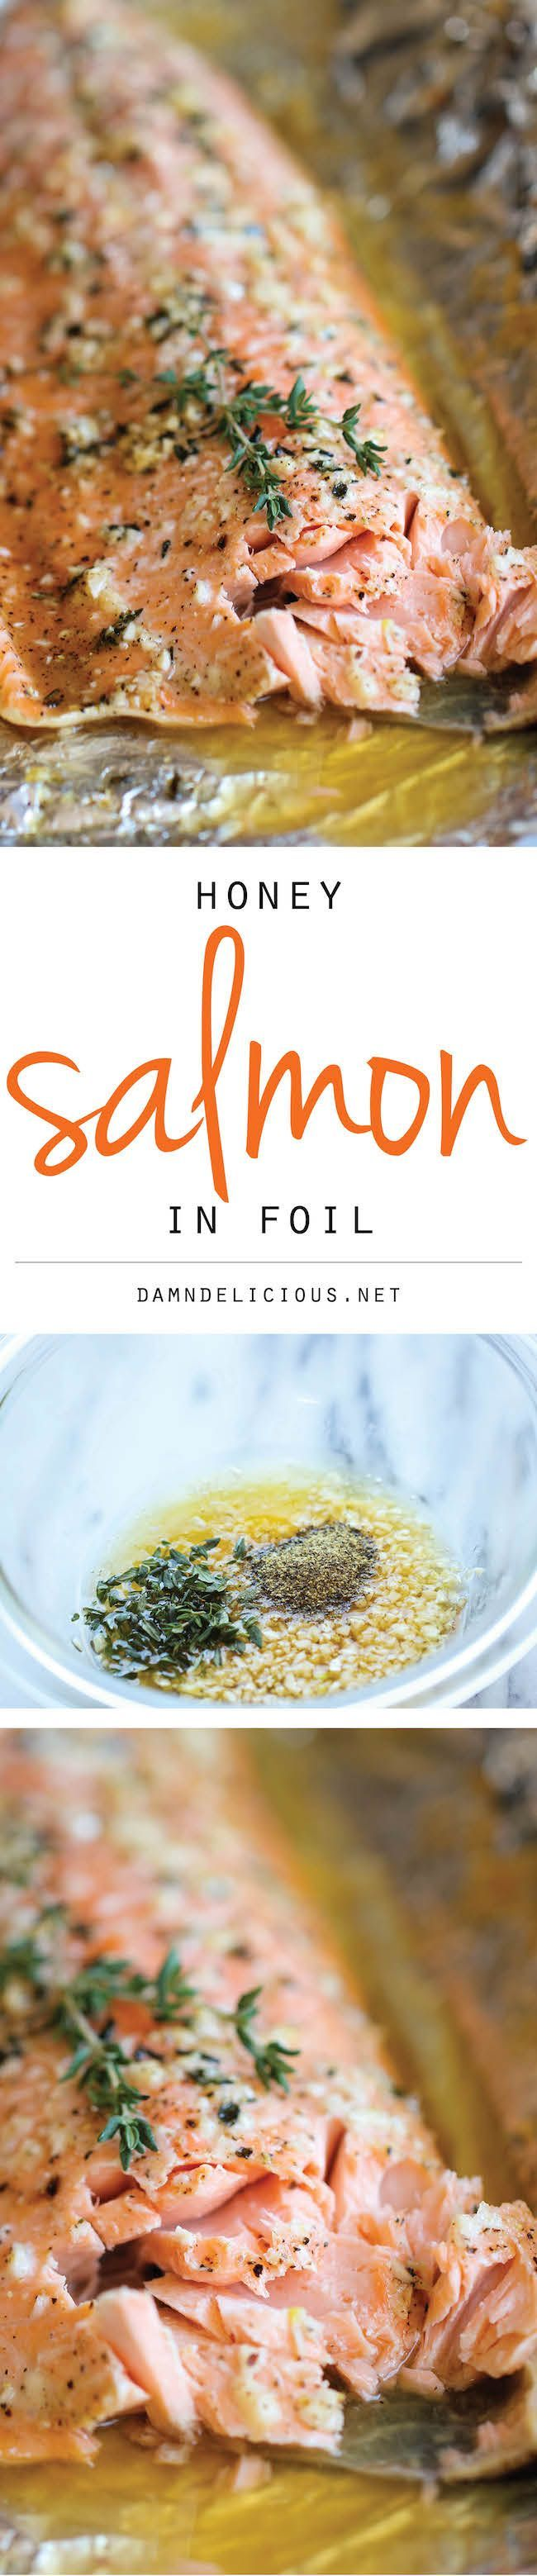 Honey Salmon in Foil - http://healthyworksnack.com/honey-salmon-in-foil/